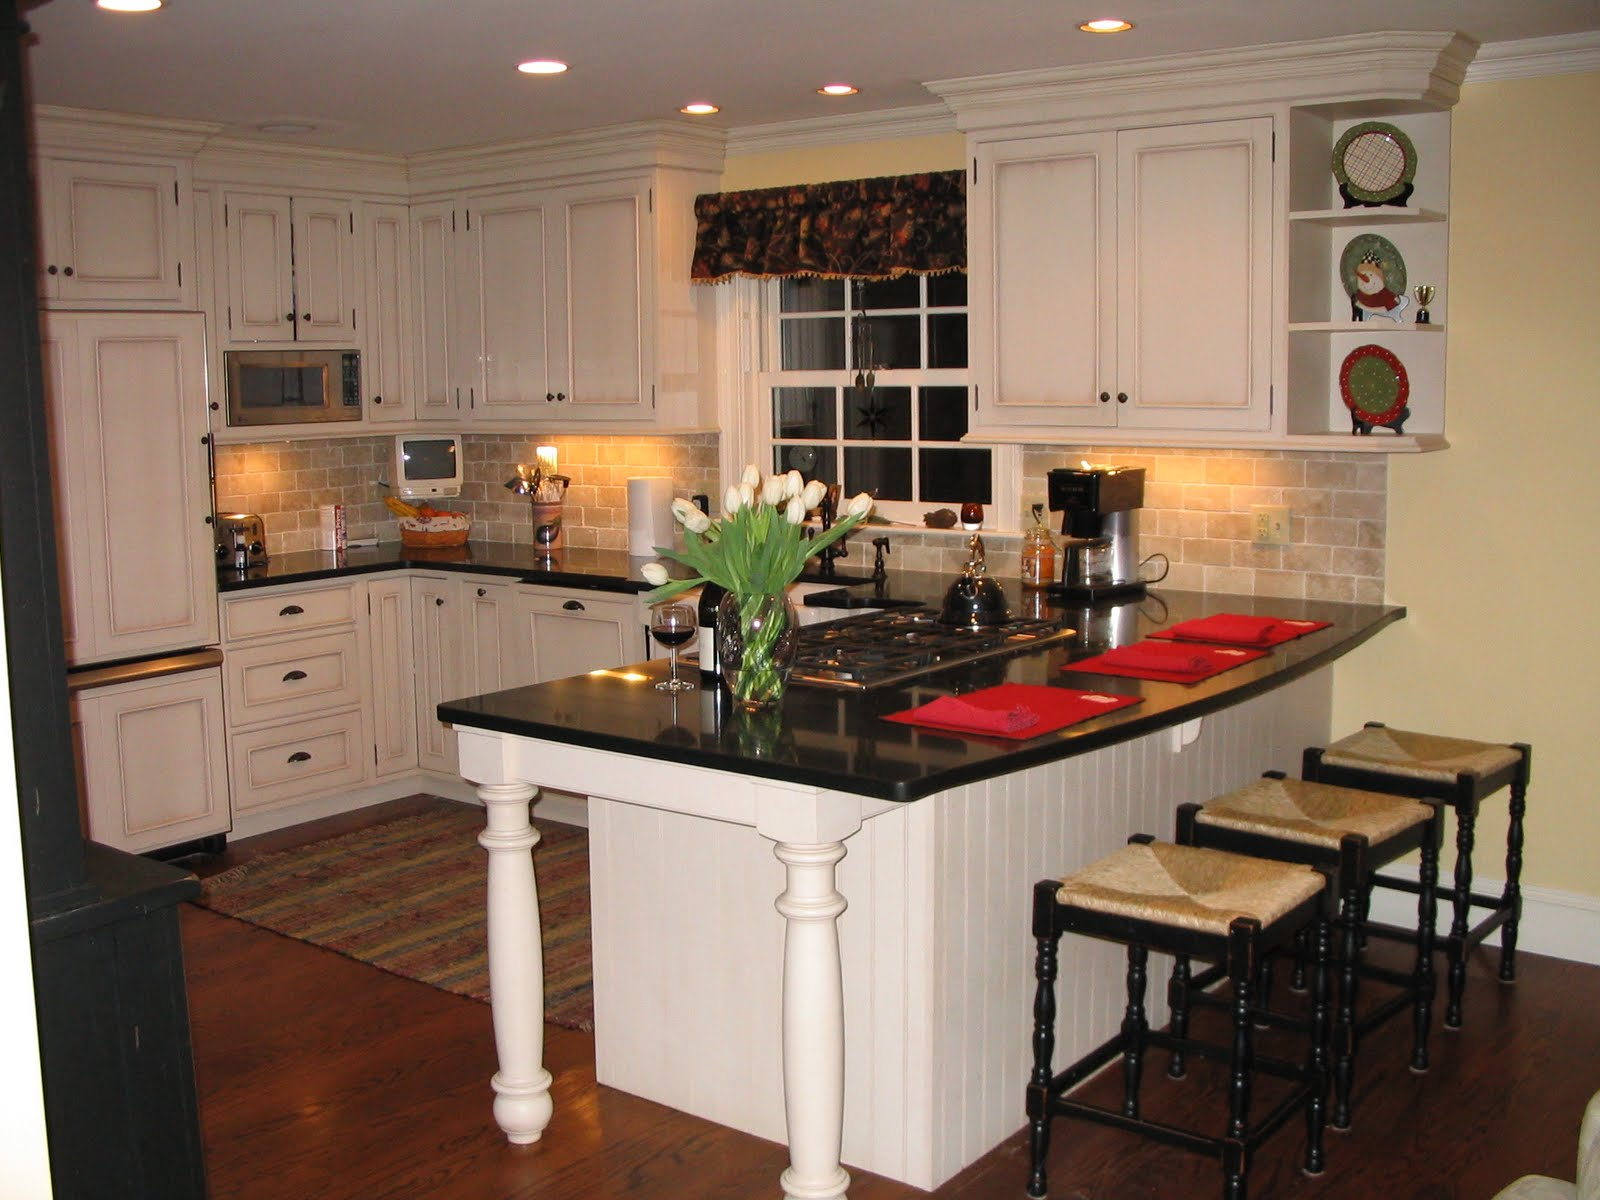 5 kitchen remodeling tips a concord carpenter kitchen remodel solutioingenieria Image collections